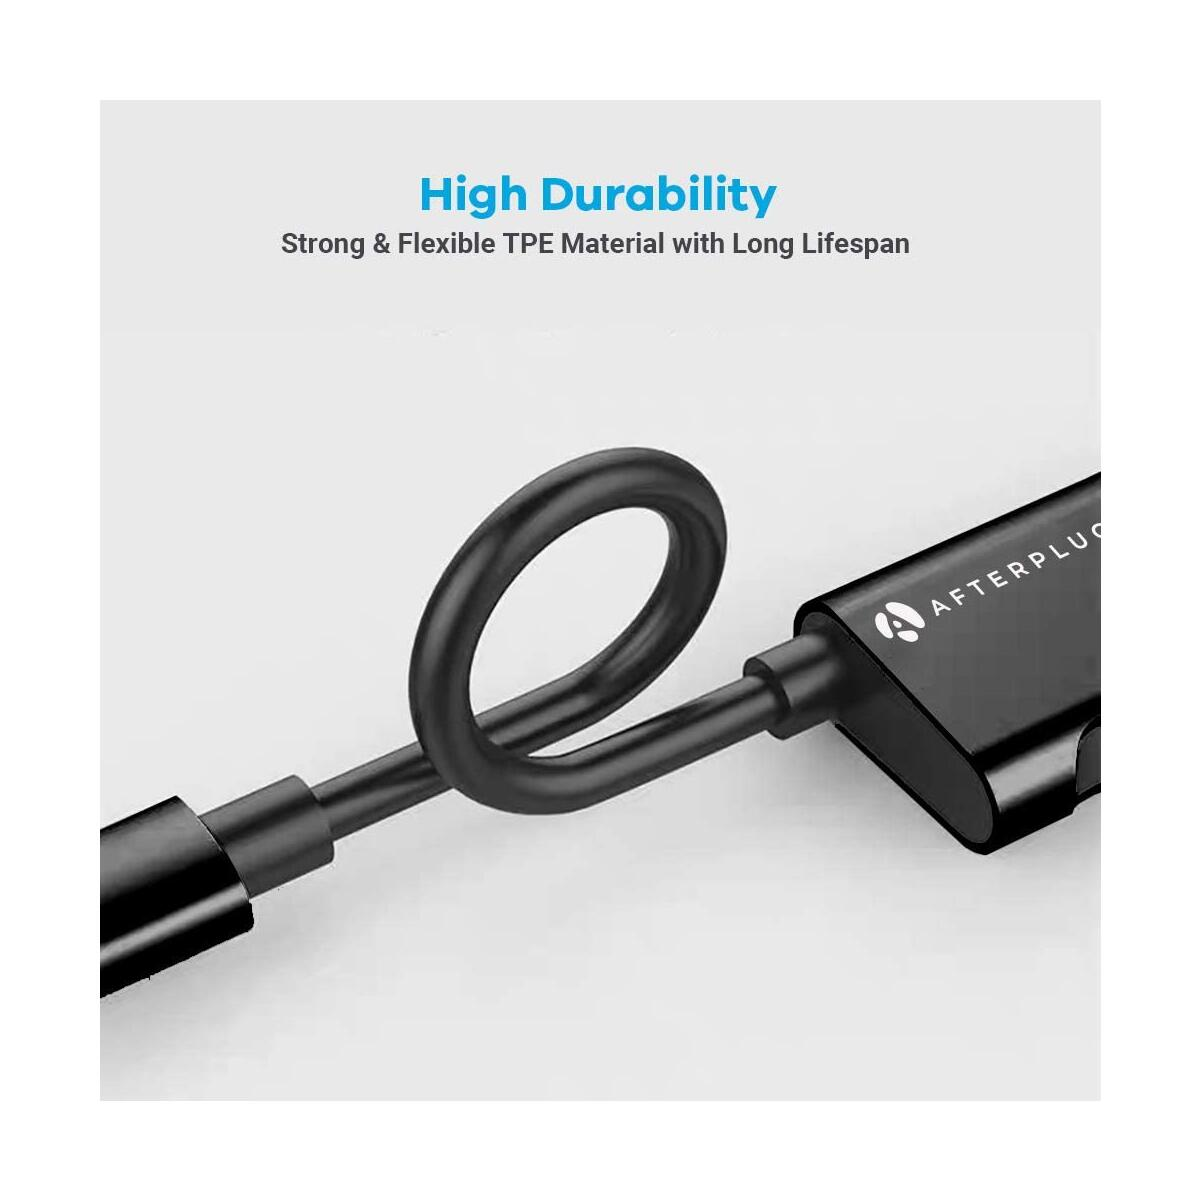 Afterplug 2-in-1 Type C Splitter, Dual USB-C Headphone and Charger Adapter, 60W PD Fast Charging for 2018 2020 iPad Pro, Nintendo Switch Lite, Samsung S20 Ultra S10 S9 Note10, Google Pixel and More